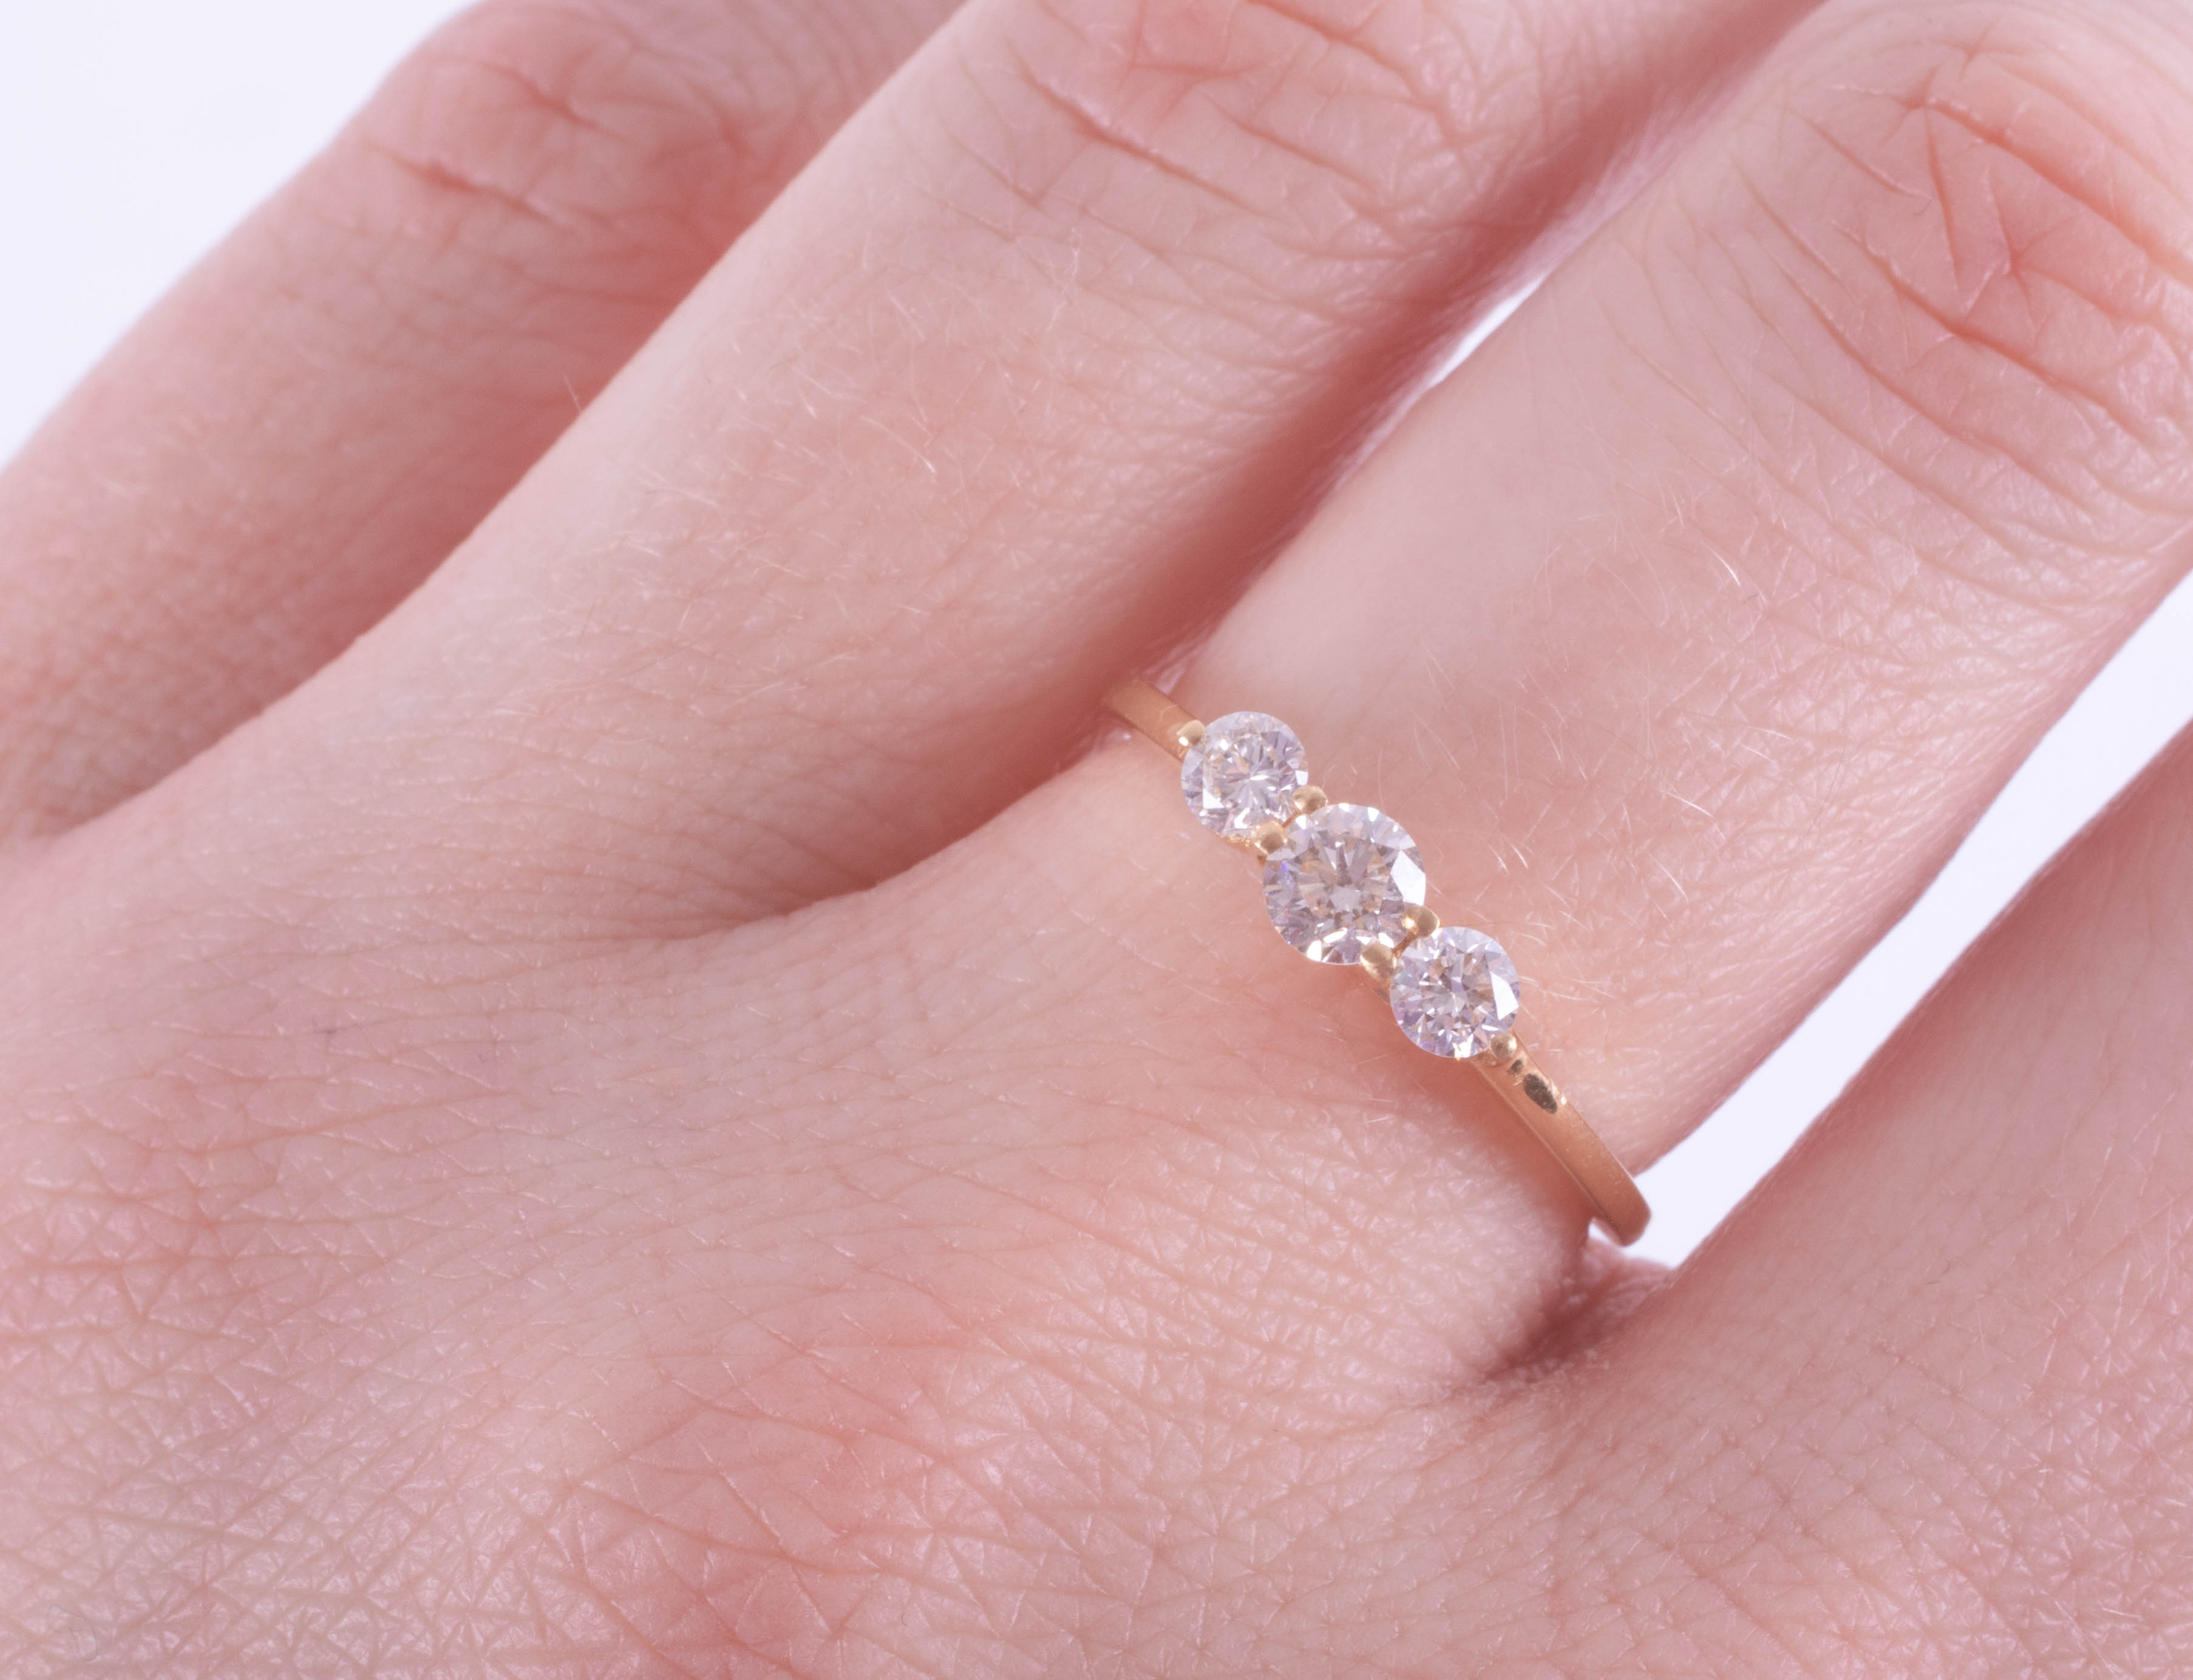 An 18ct yellow gold trilogy ring approx. 0.50ct, estimated colour and clarity E/SI1, ring size M. - Image 2 of 2